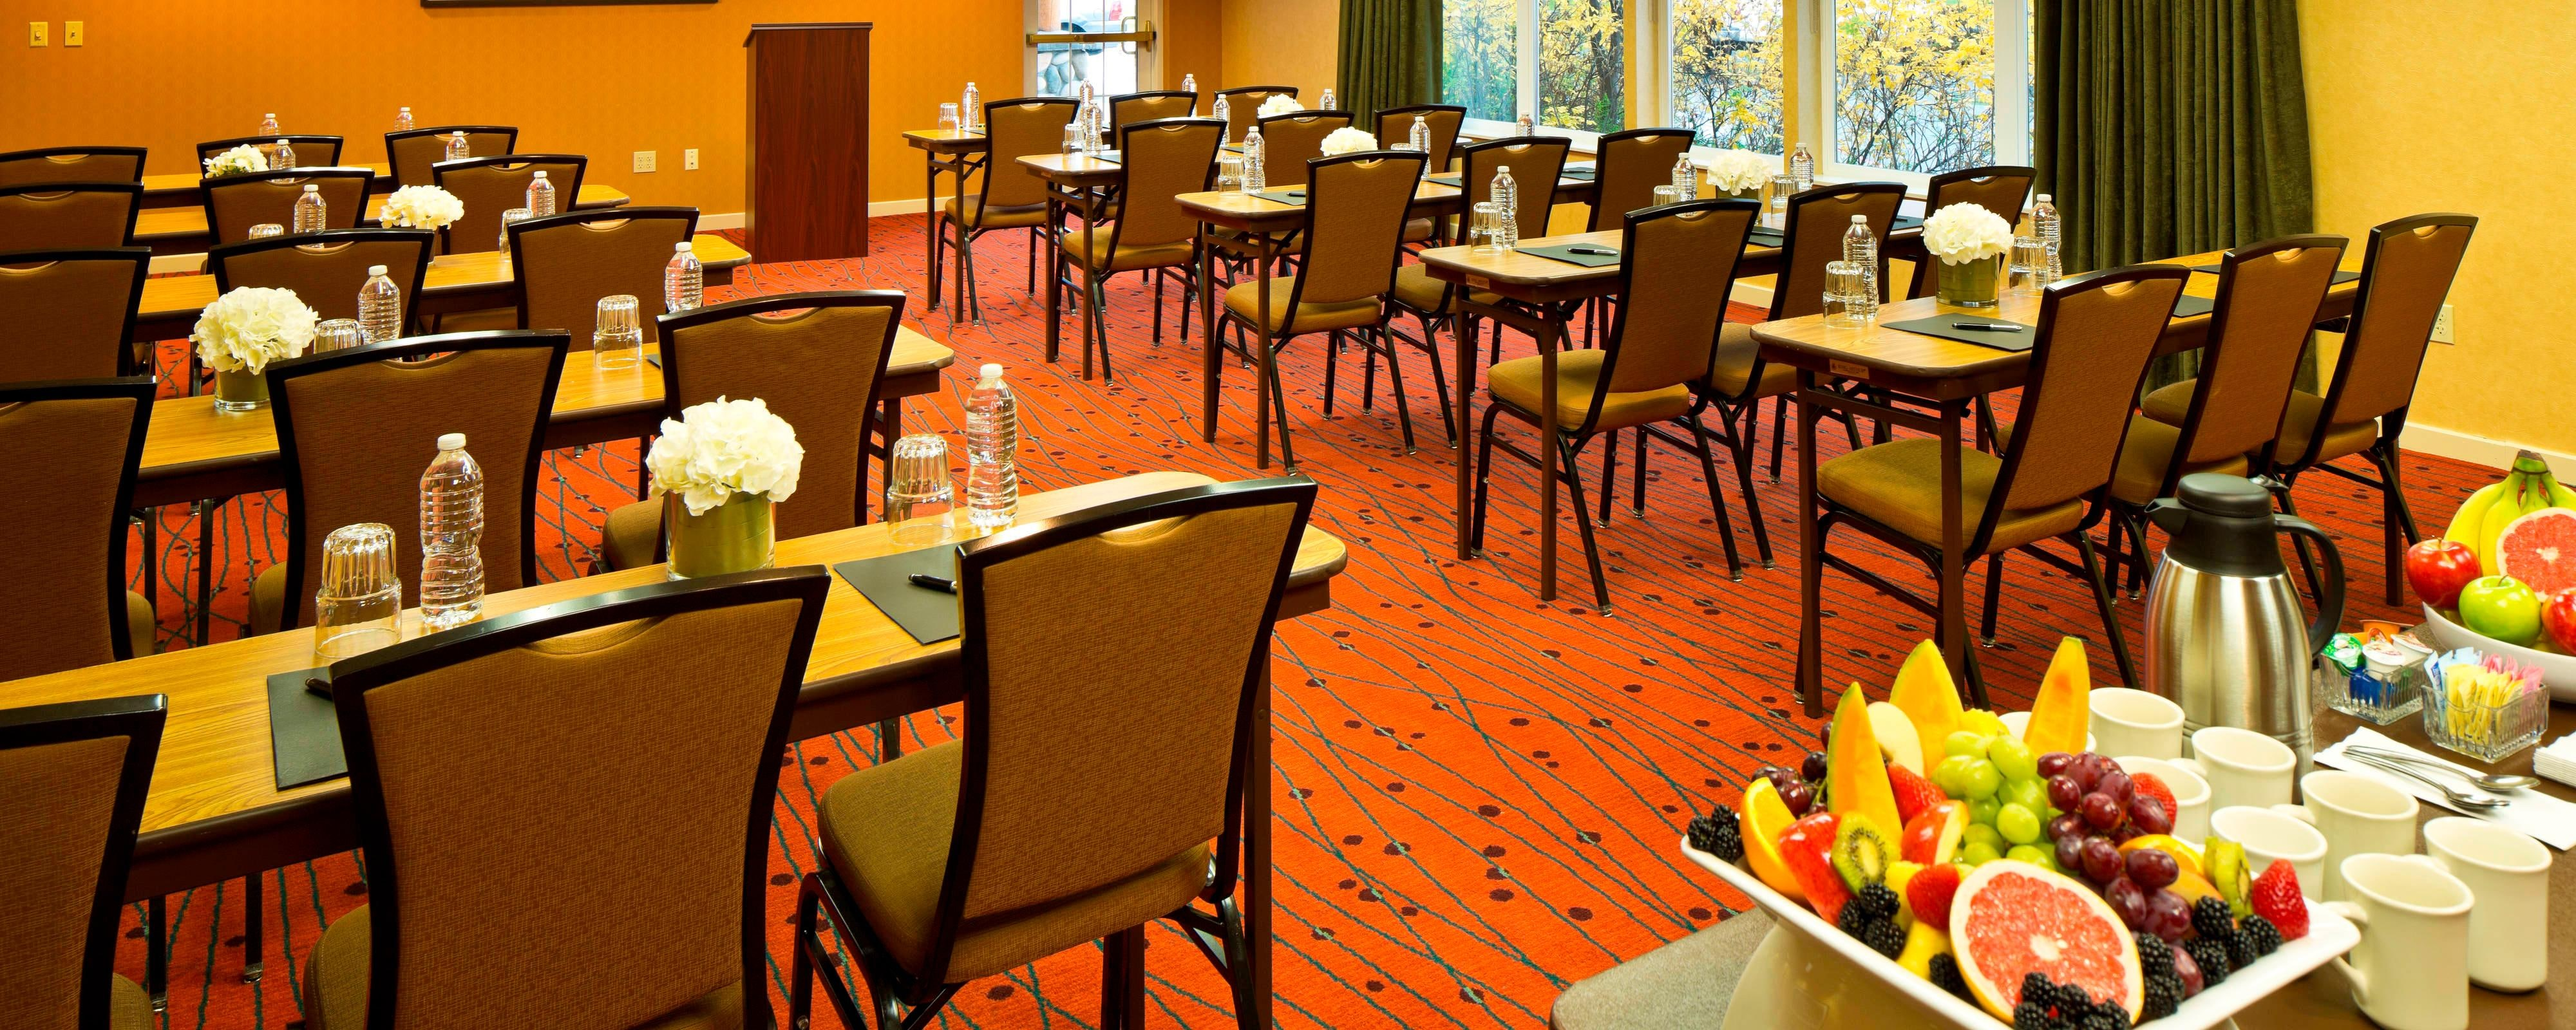 Residence Inn small meeting room by BP in Anchorage, Alaska